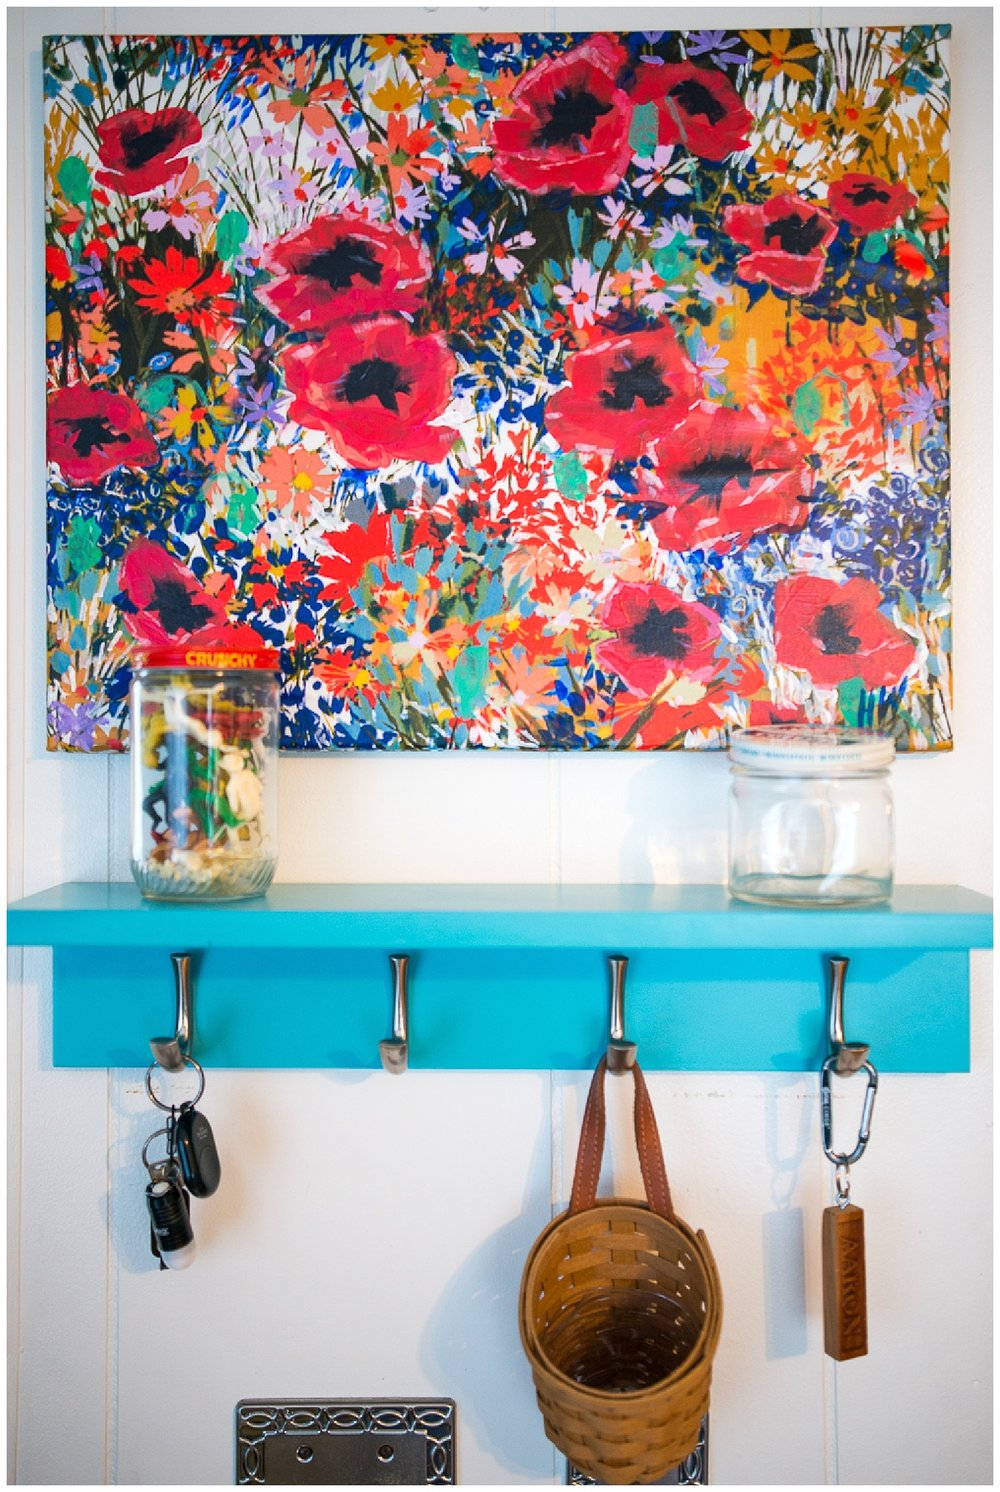 Bri got this piece of art by Heather Skavlem from Fresh Digs. The shelf with hooks is a great place to keep important items all in one place.